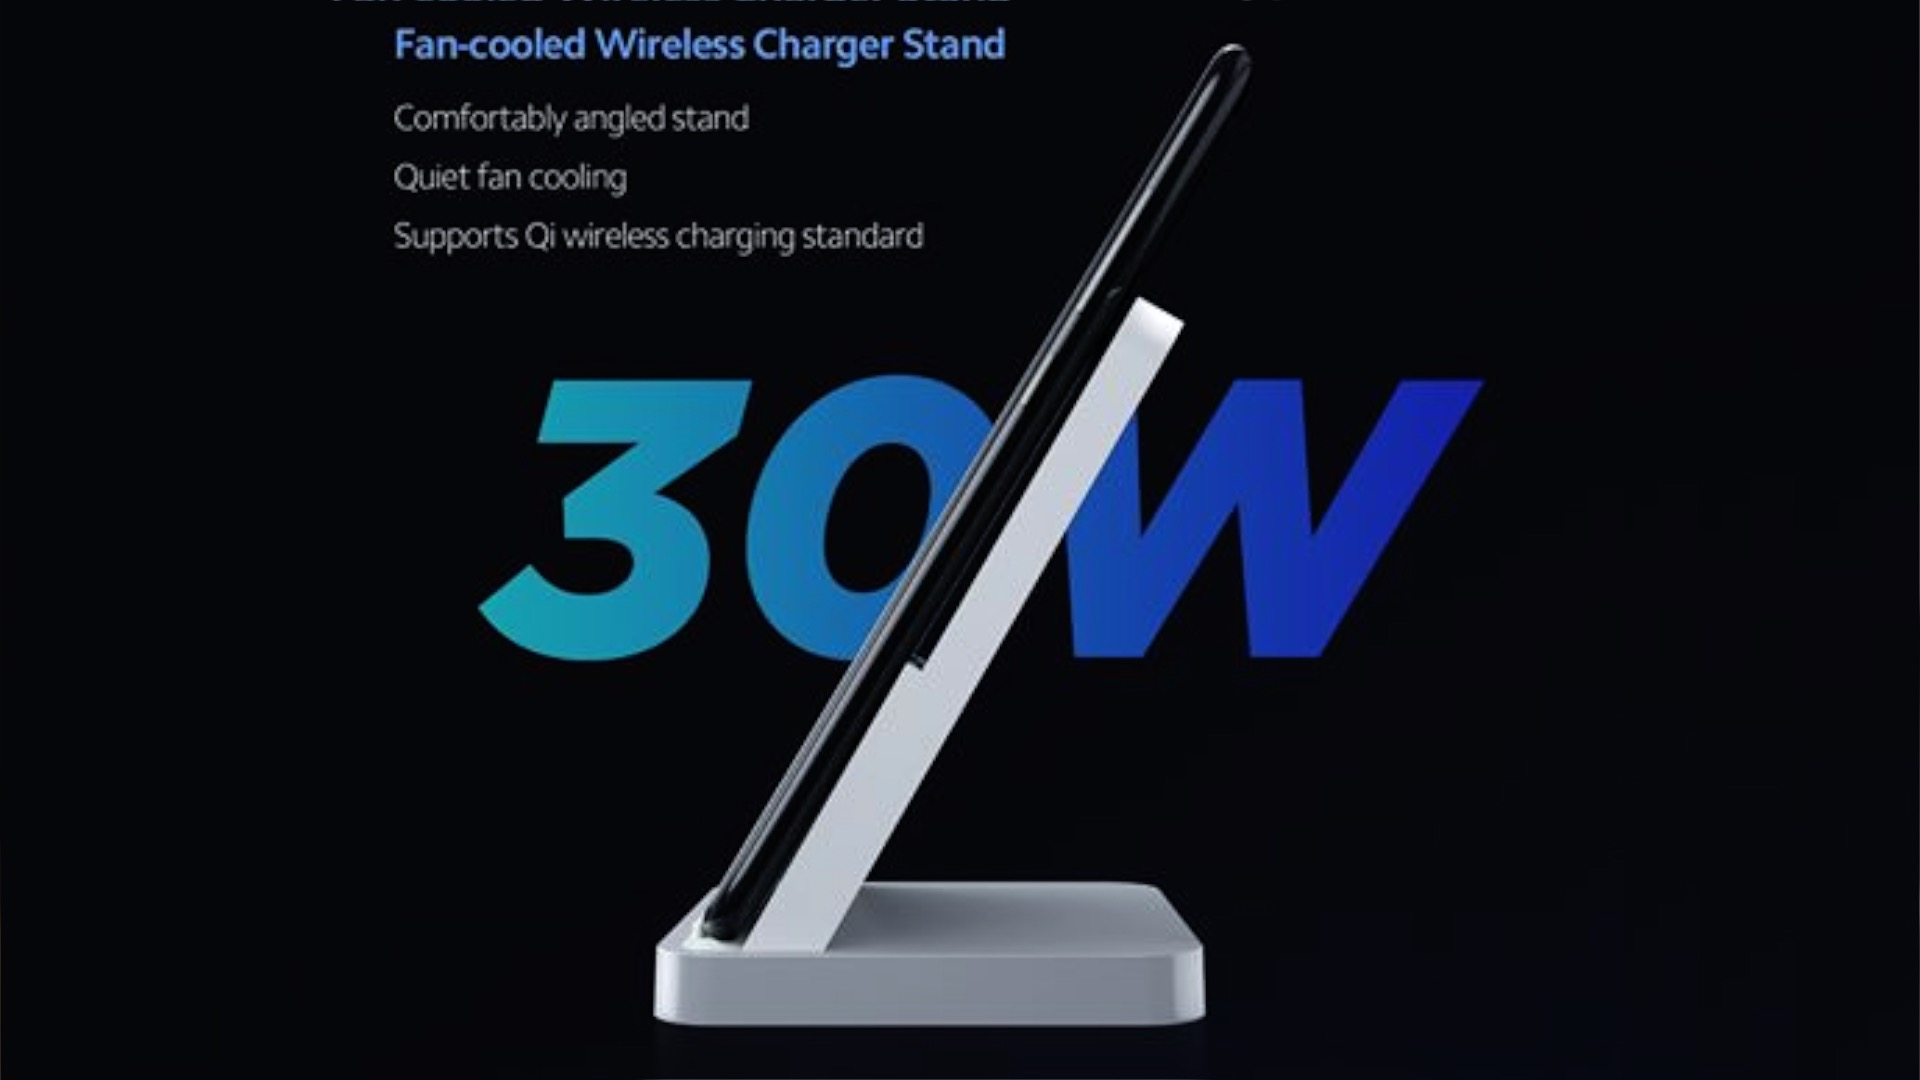 Xiaomi Vertical Air-Cooled Wireless Charger